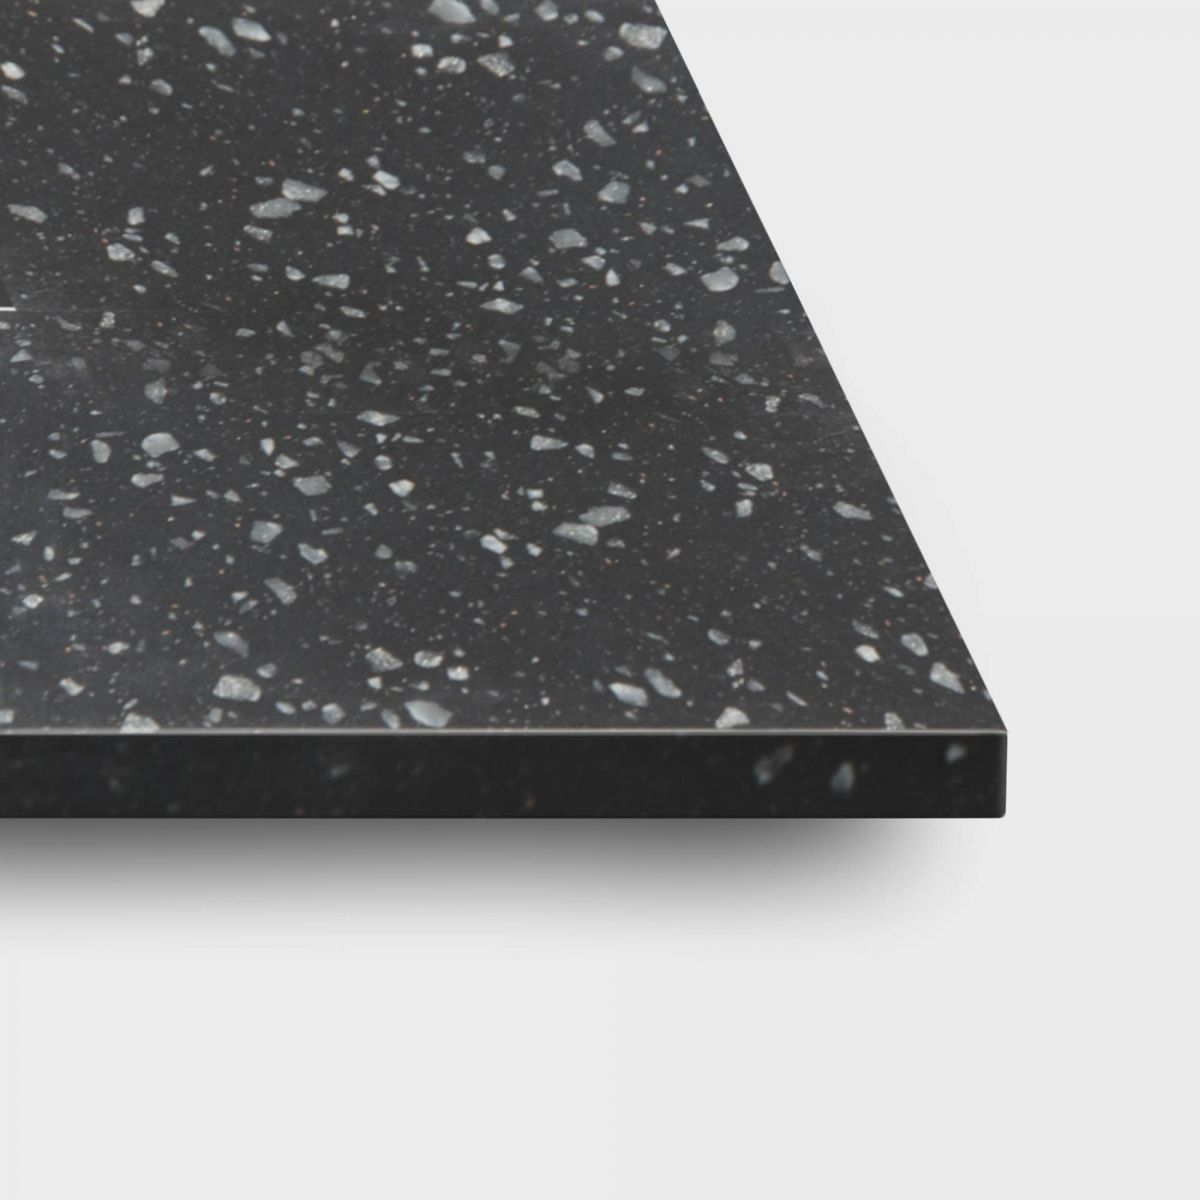 Black Granite Kordura Top